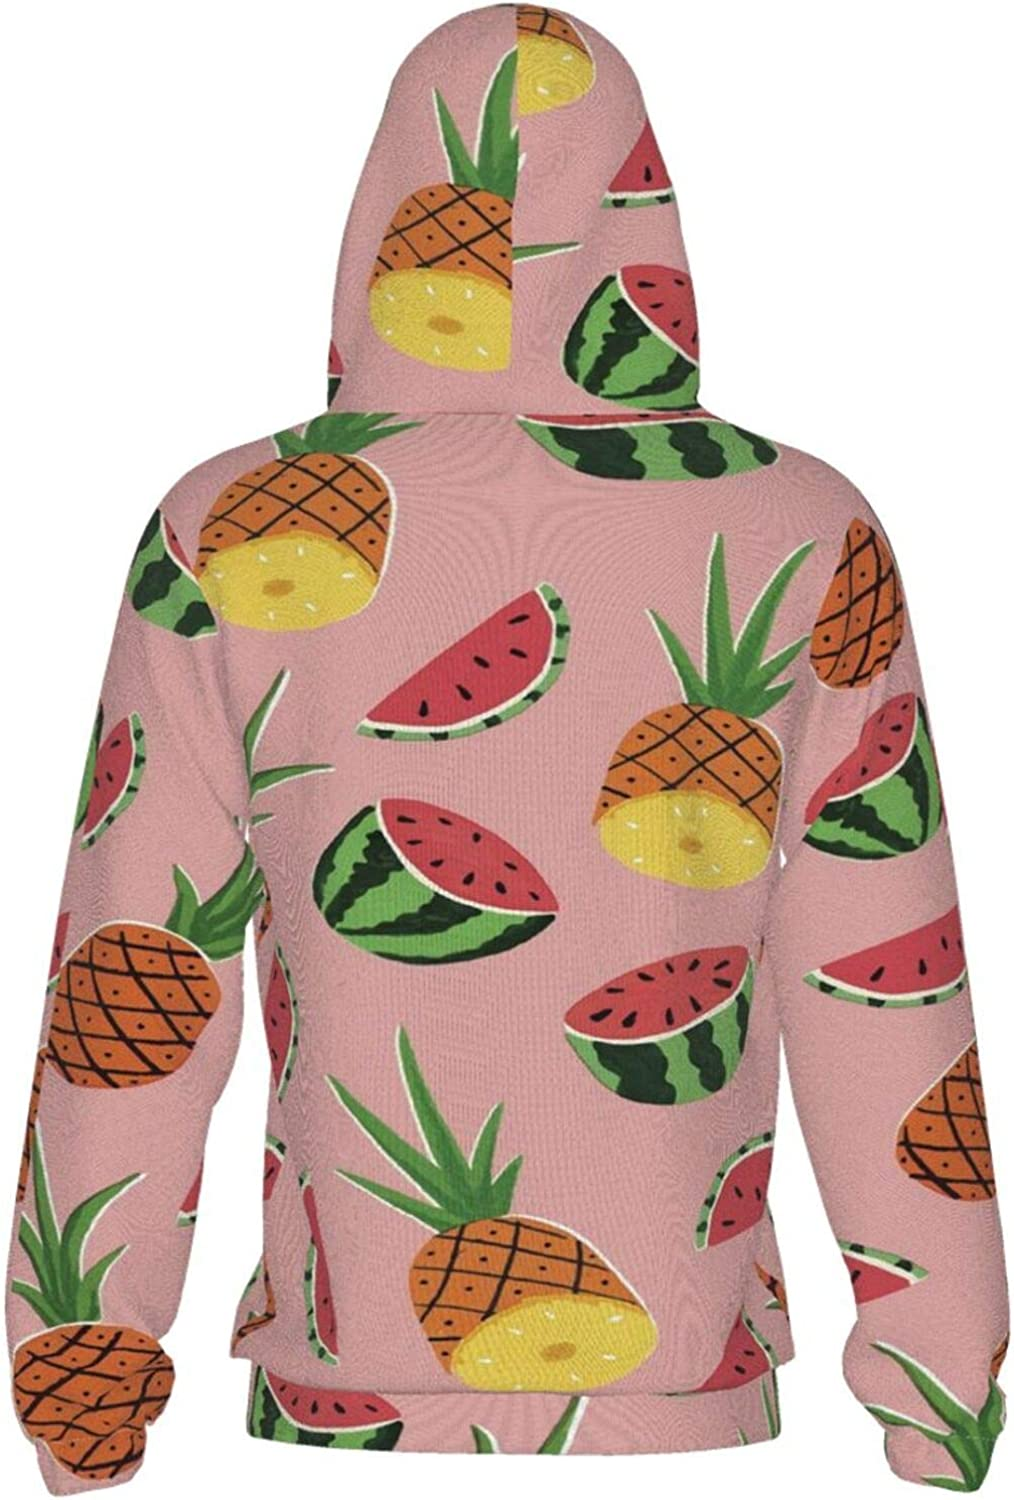 Kids Graphic Hooded Sweatshirts Long Sleeve Pullover Hoodies with Pocket for Boys Girls